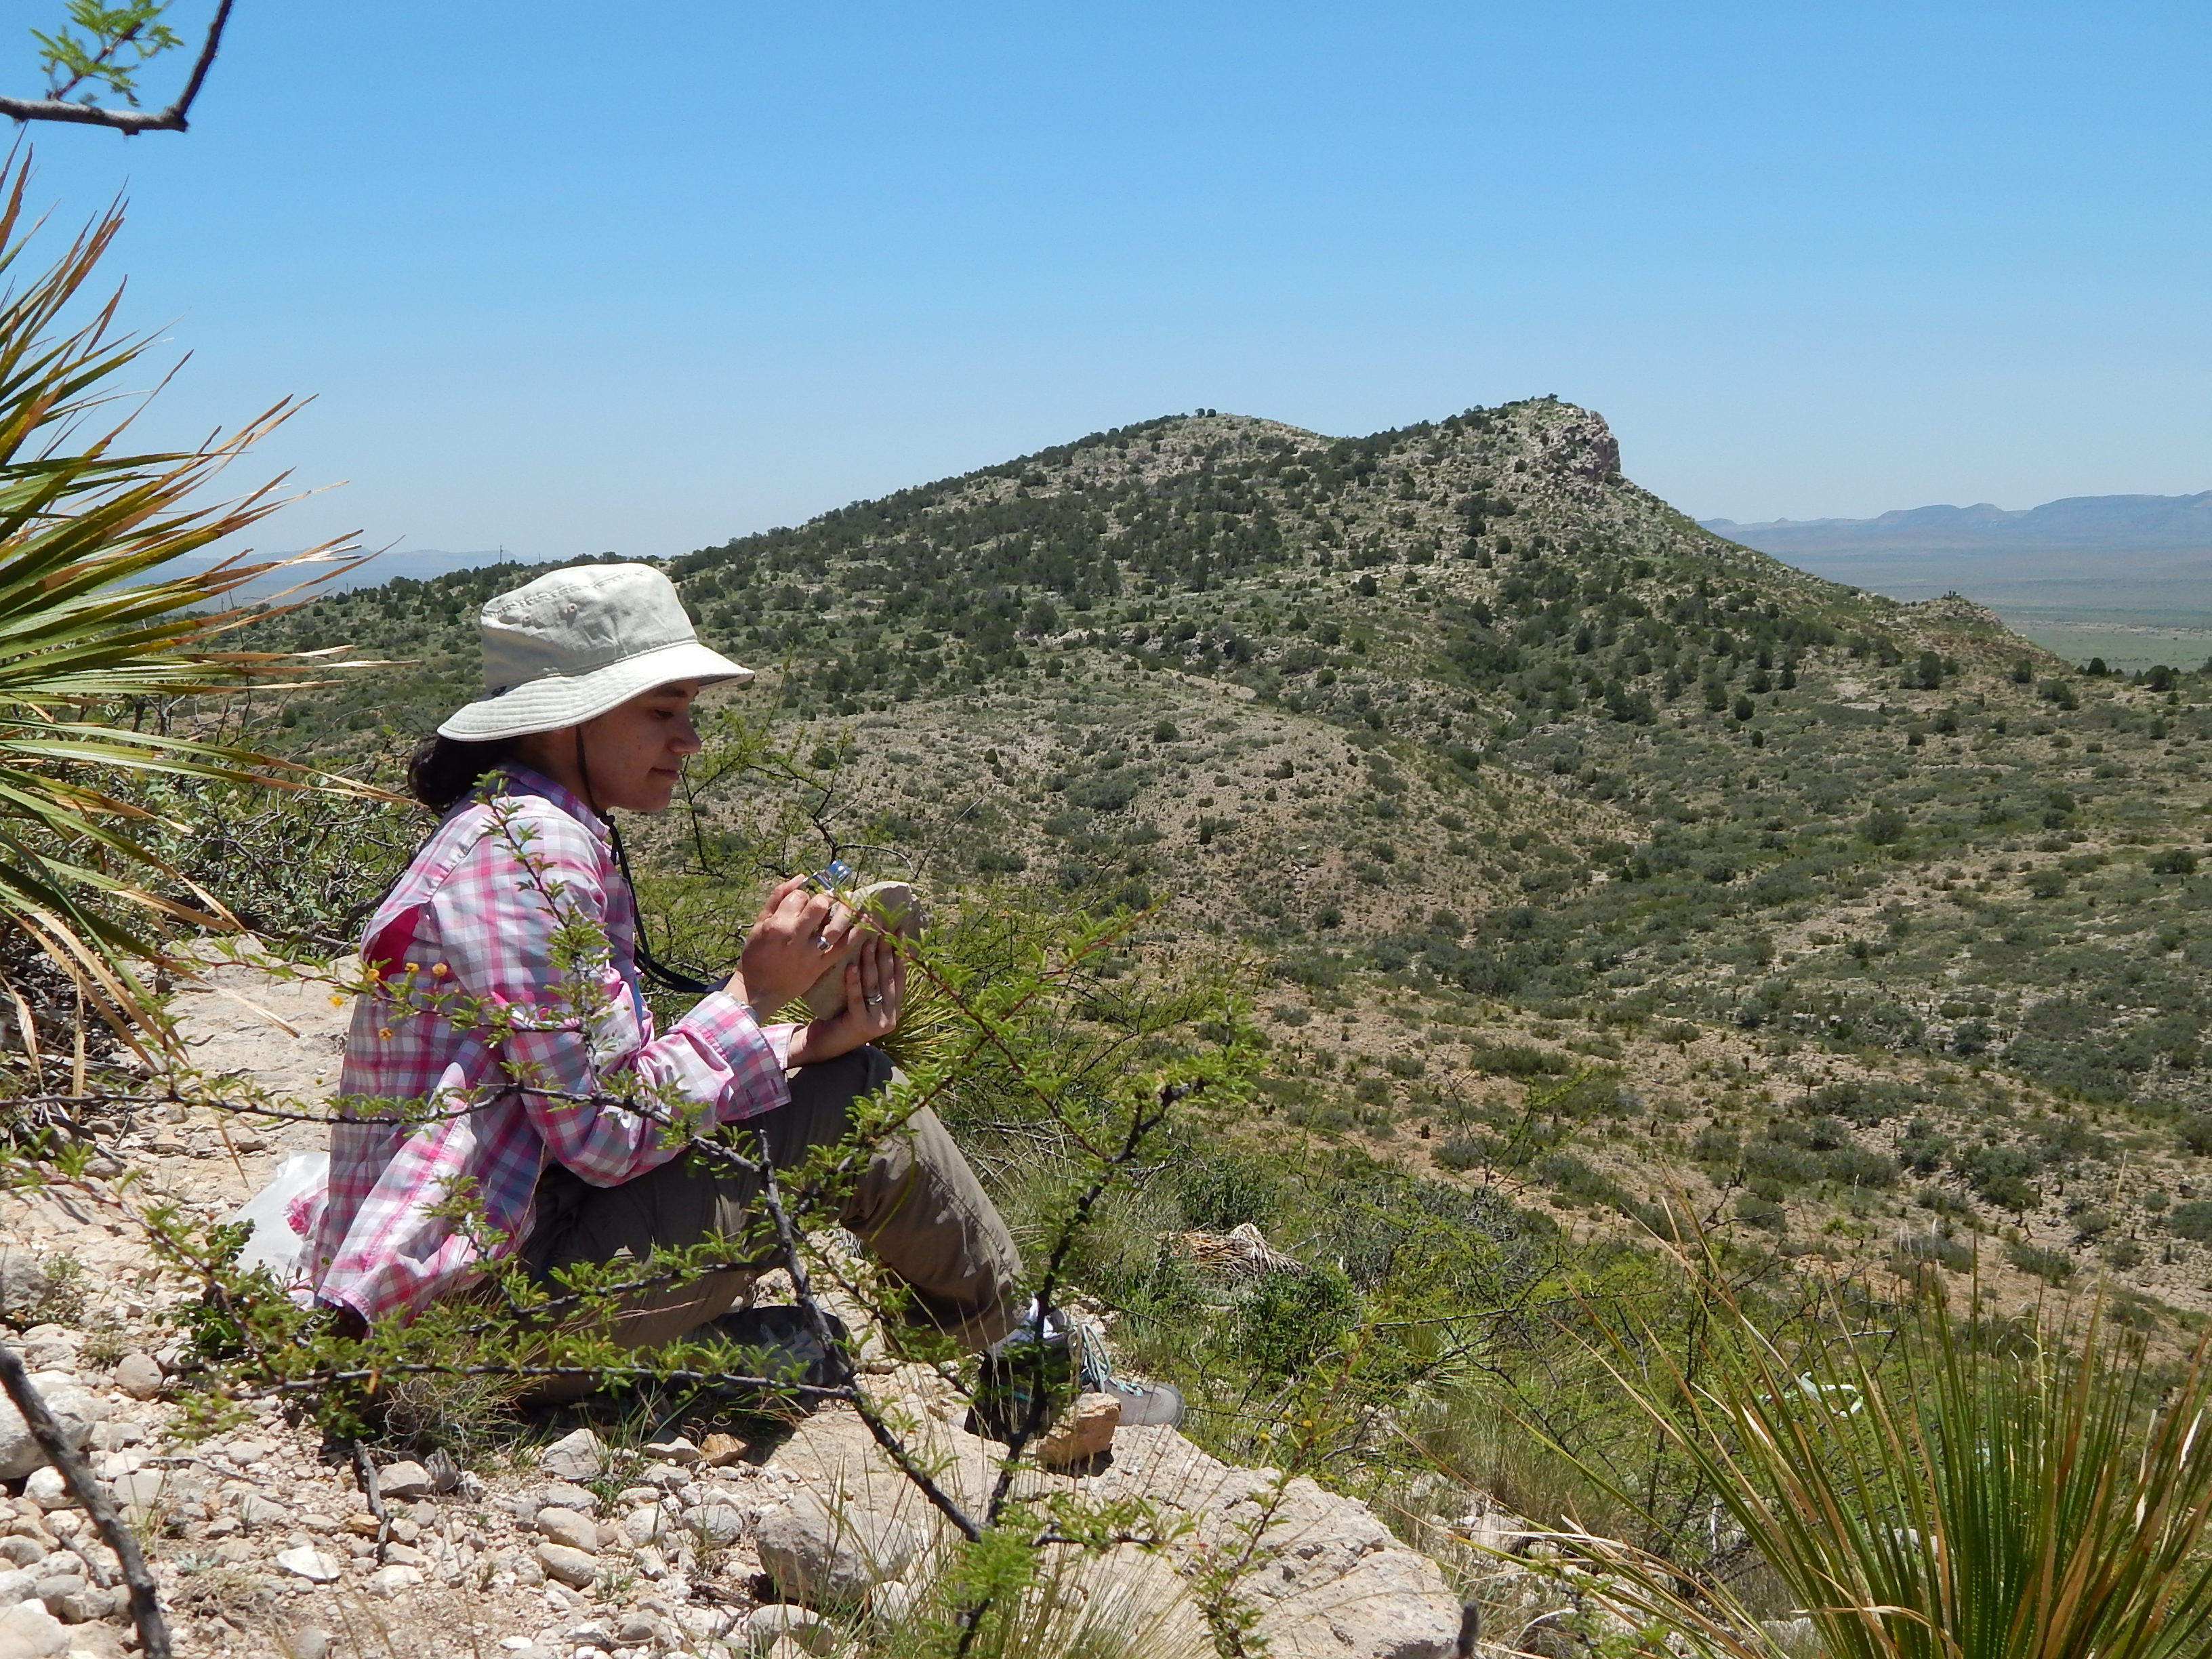 Sitting in Wolf Camp Hills looking for fusulinids and marine inverebrate in Permian limestones. Photo Credit: Eileah Simms. Taken July 2018.